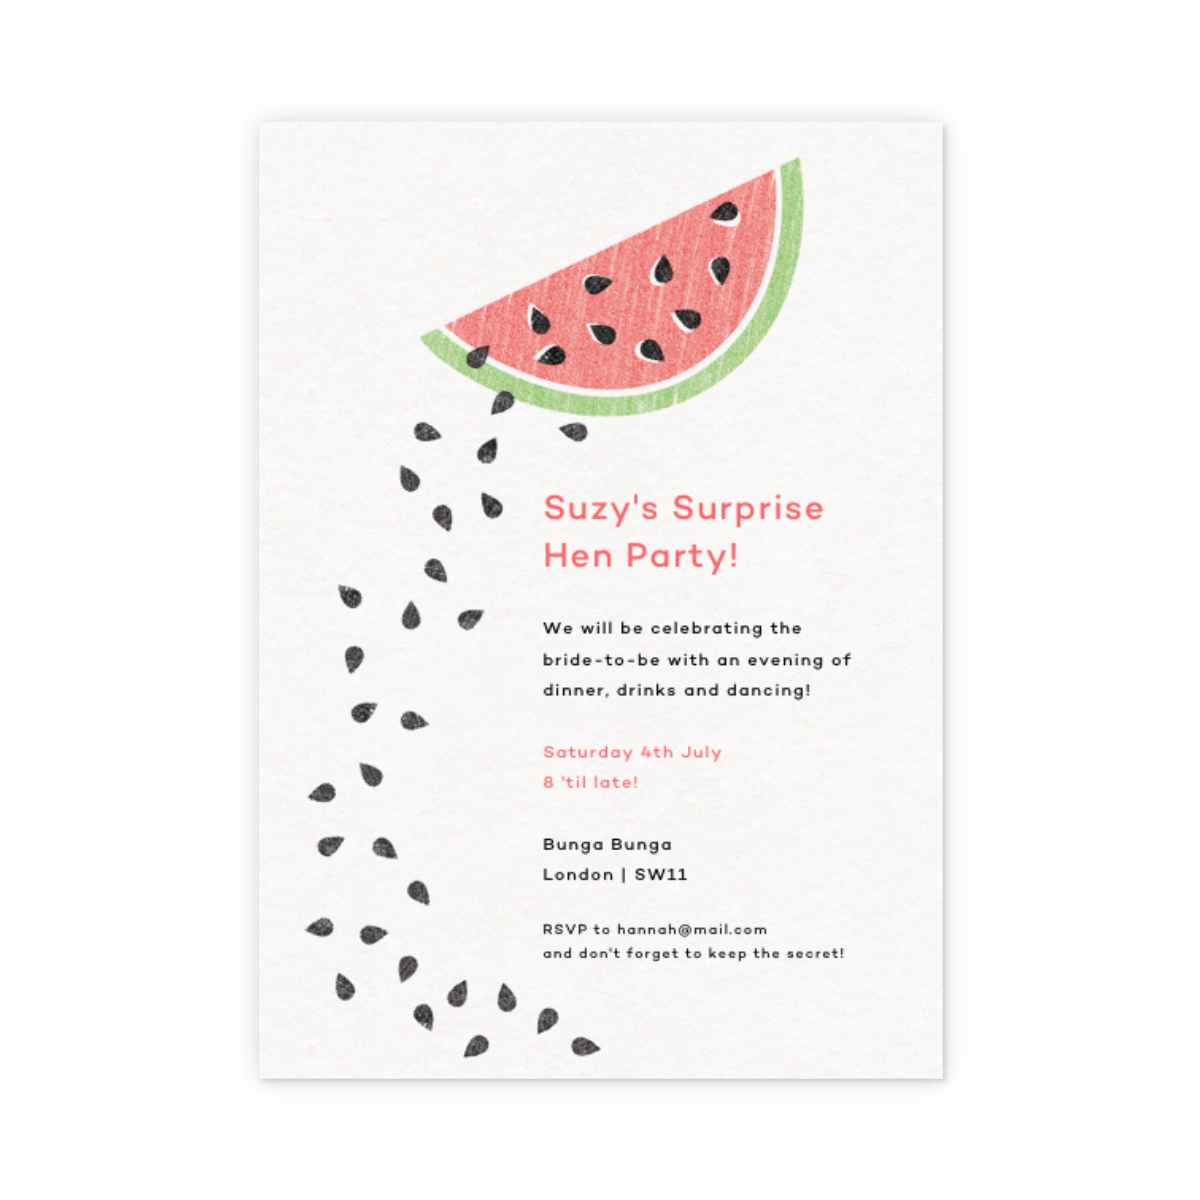 Https%3a%2f%2fwww.papier.com%2fproduct image%2f46300%2f4%2fwatermelon 11415 front 1565554385.png?ixlib=rb 1.1